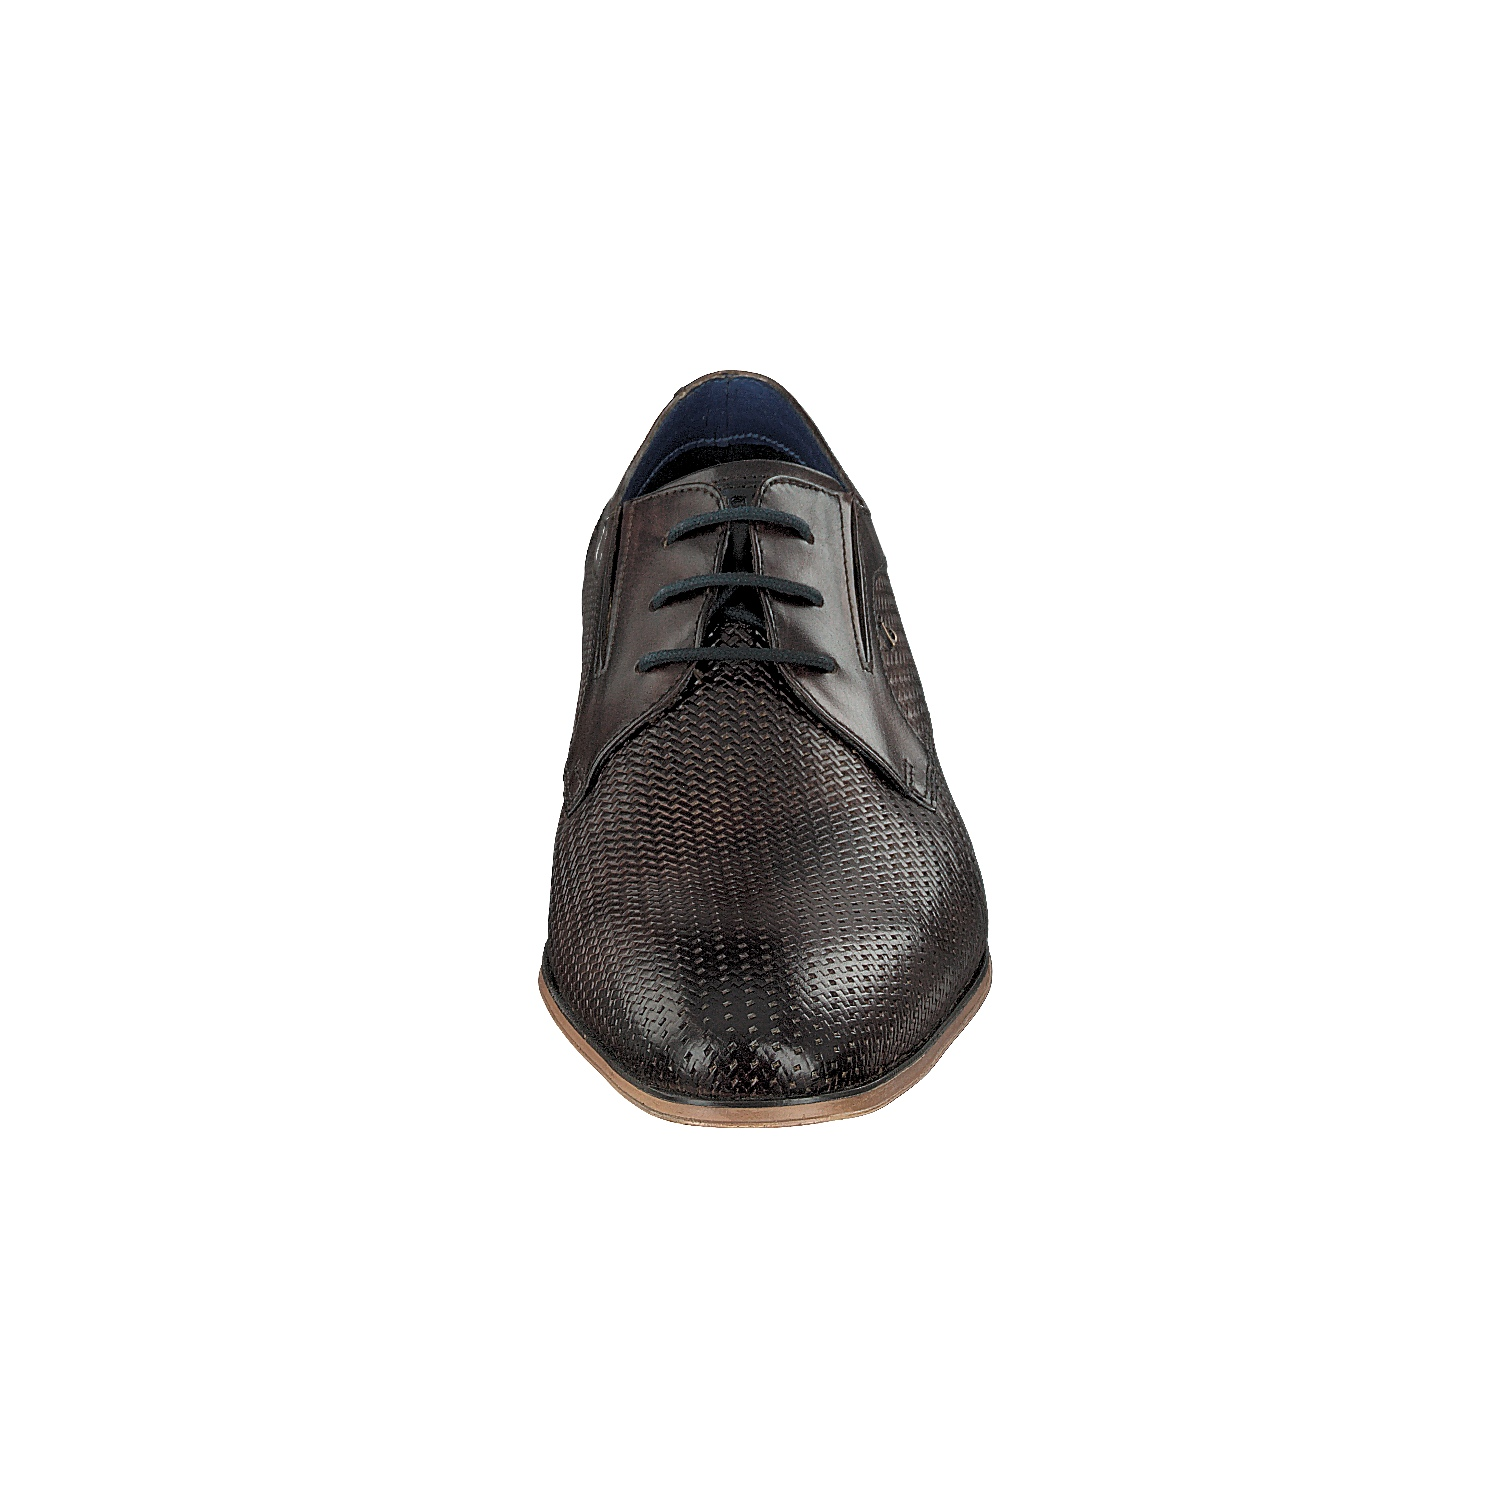 innovative design 9e7db bf9ab Bugatti Herren Schnürschuh MOSARIO 311-25204-2115-6140 dark brown